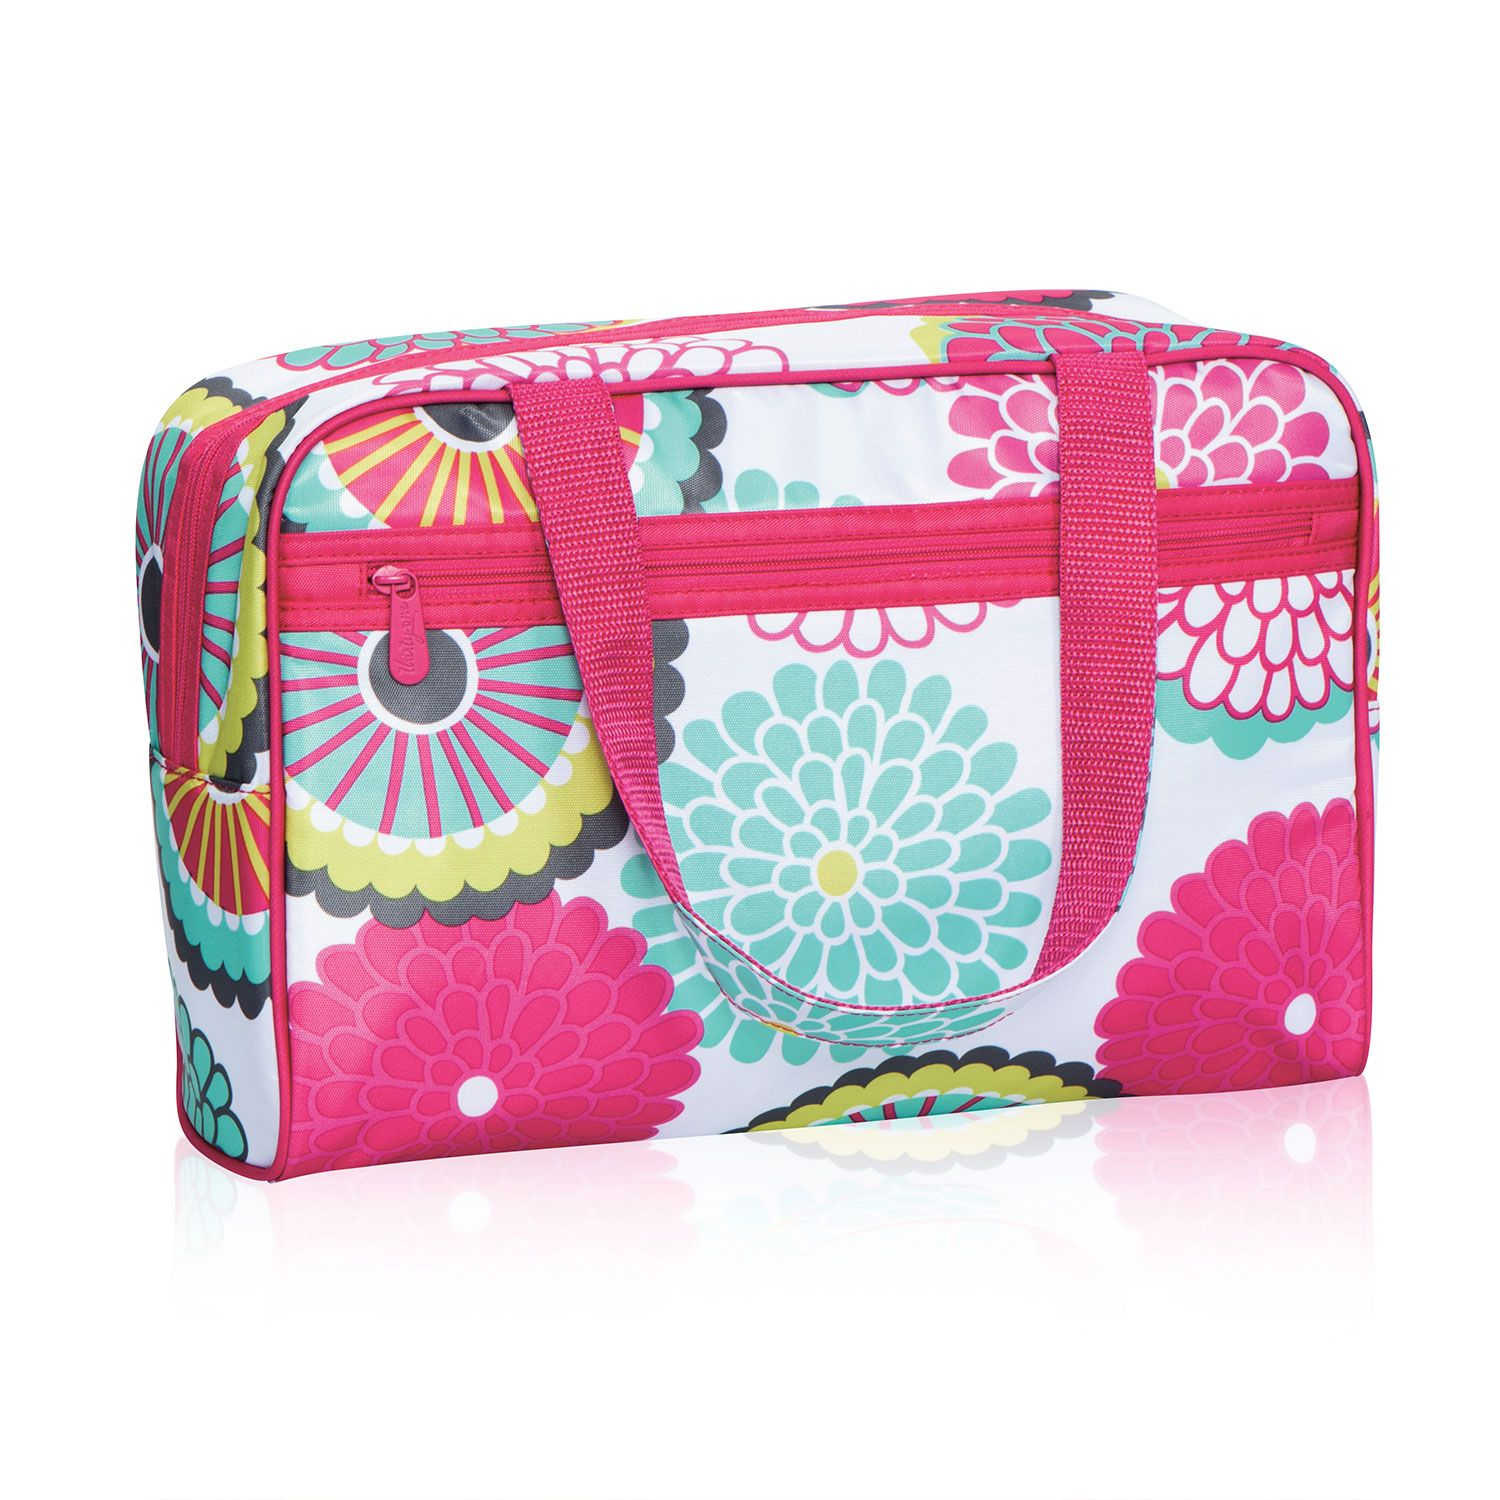 HandleIt Cosmetic Bag in Bubble Bloom for 30 Look your